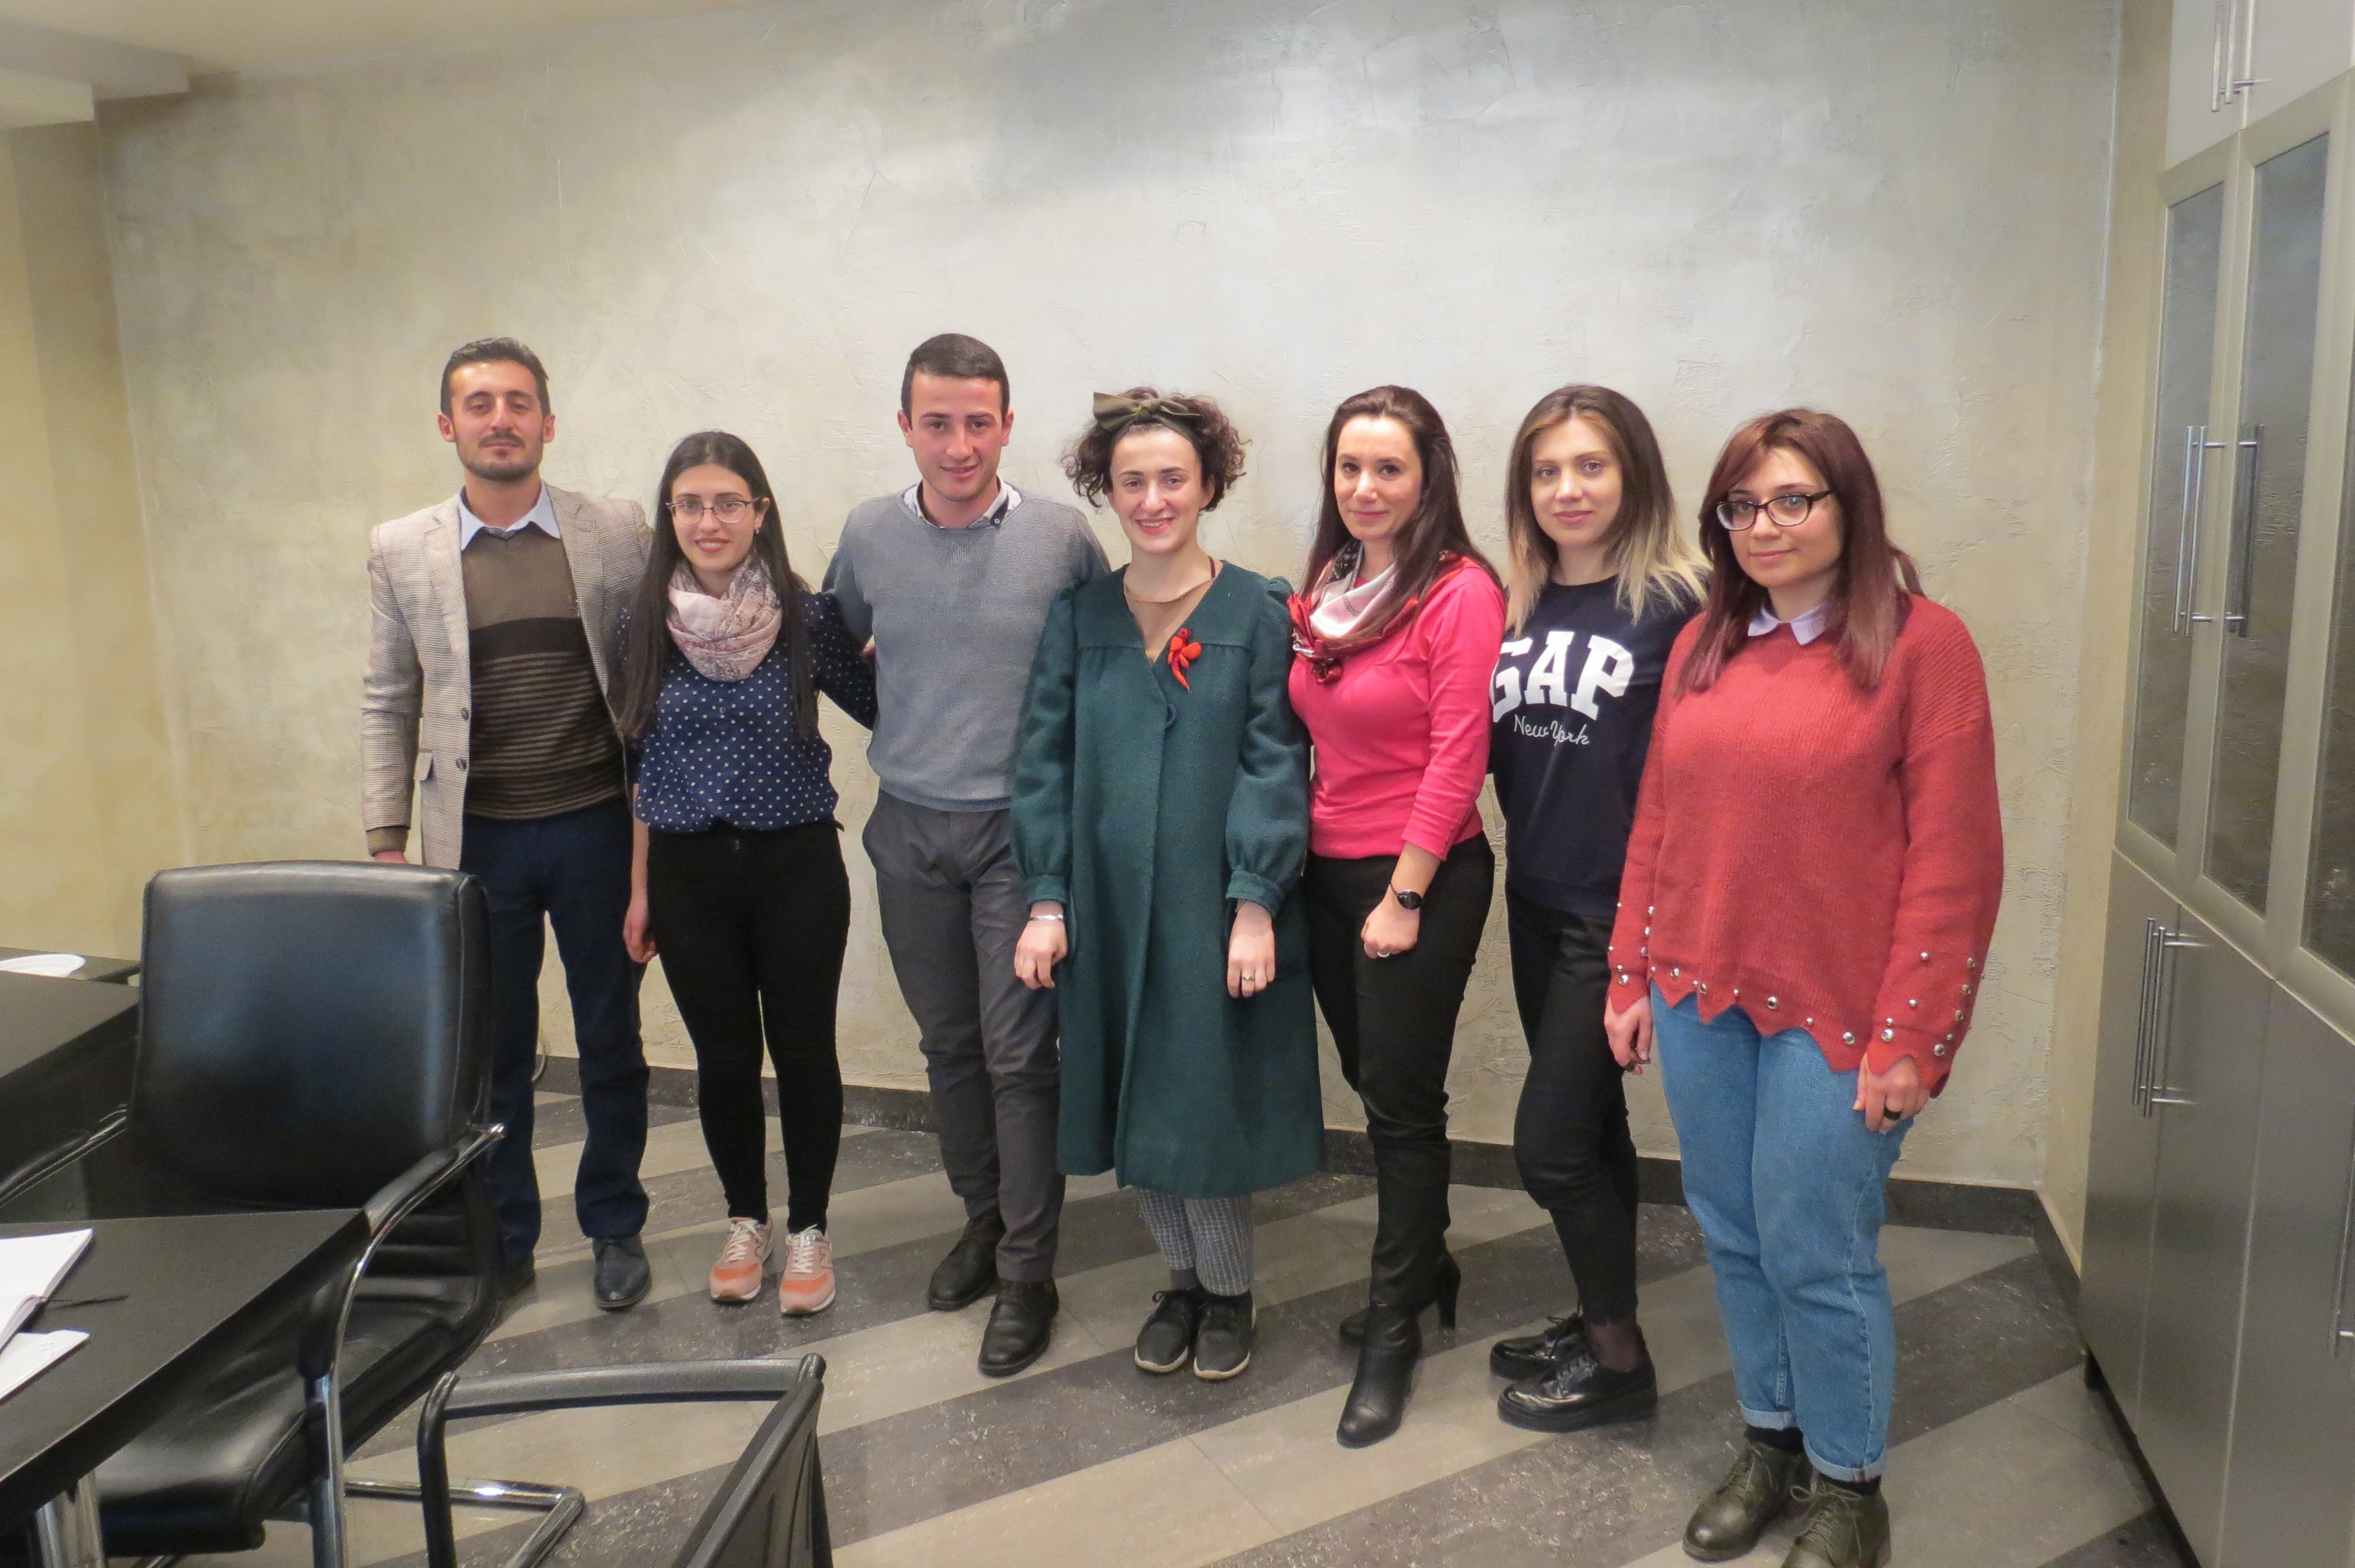 10.02-18.03.2018 - Preparation meeting with Armenian fellows in Yerevan